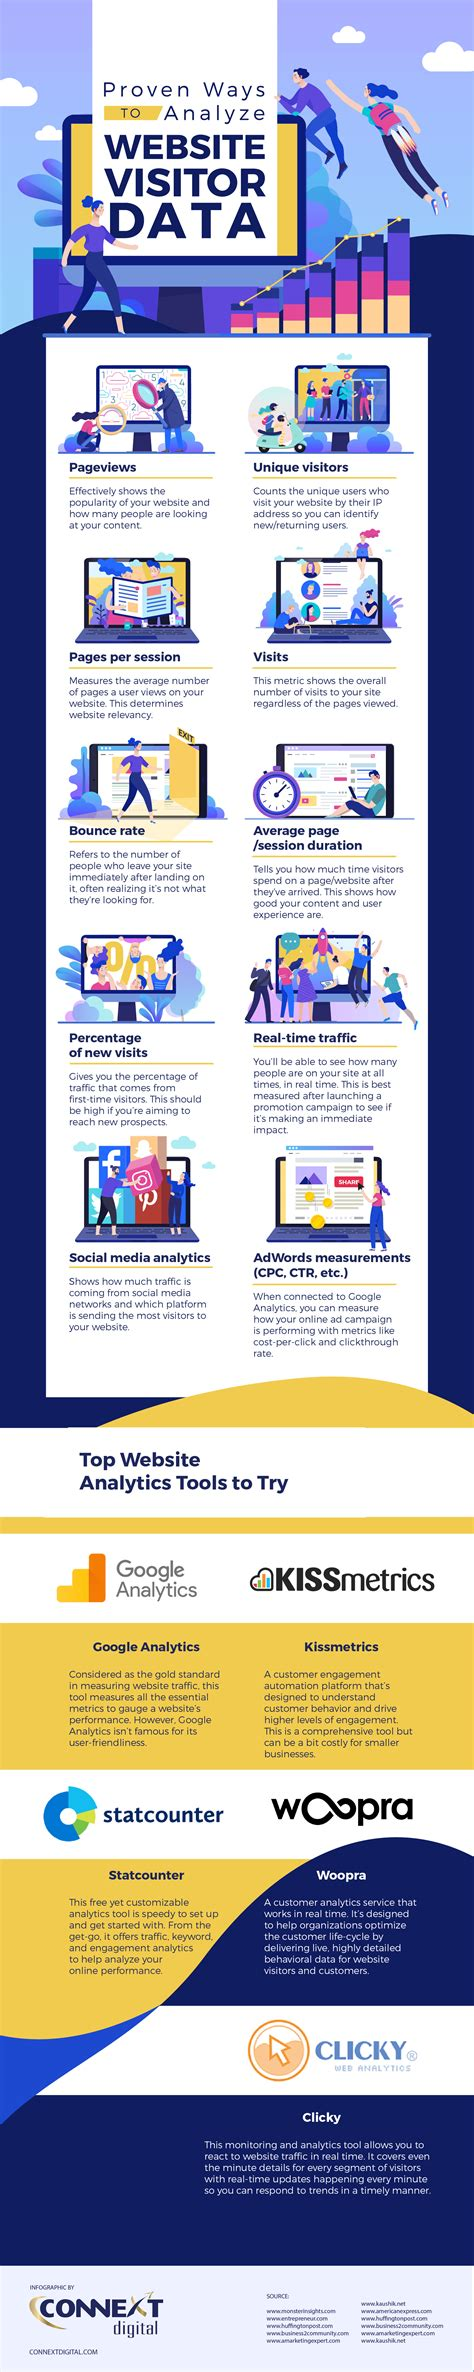 Proven Ways to Analyze Website Visitor Data - Infographic